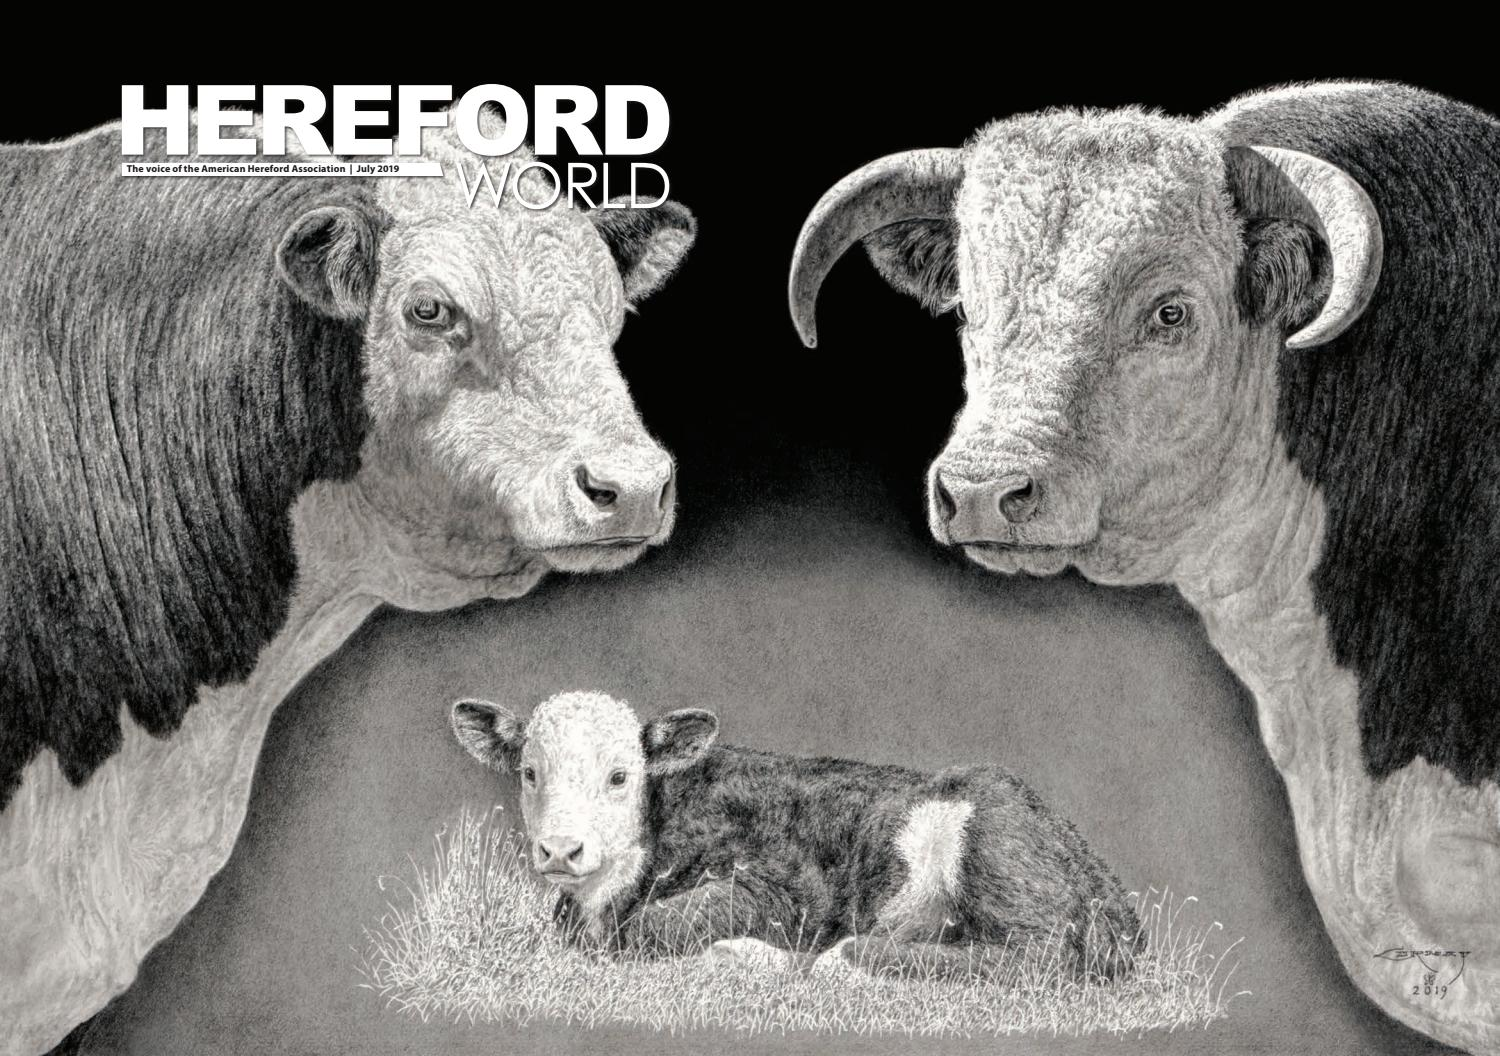 ccb29a7029c July 2019 Hereford World by American Hereford Association and ...